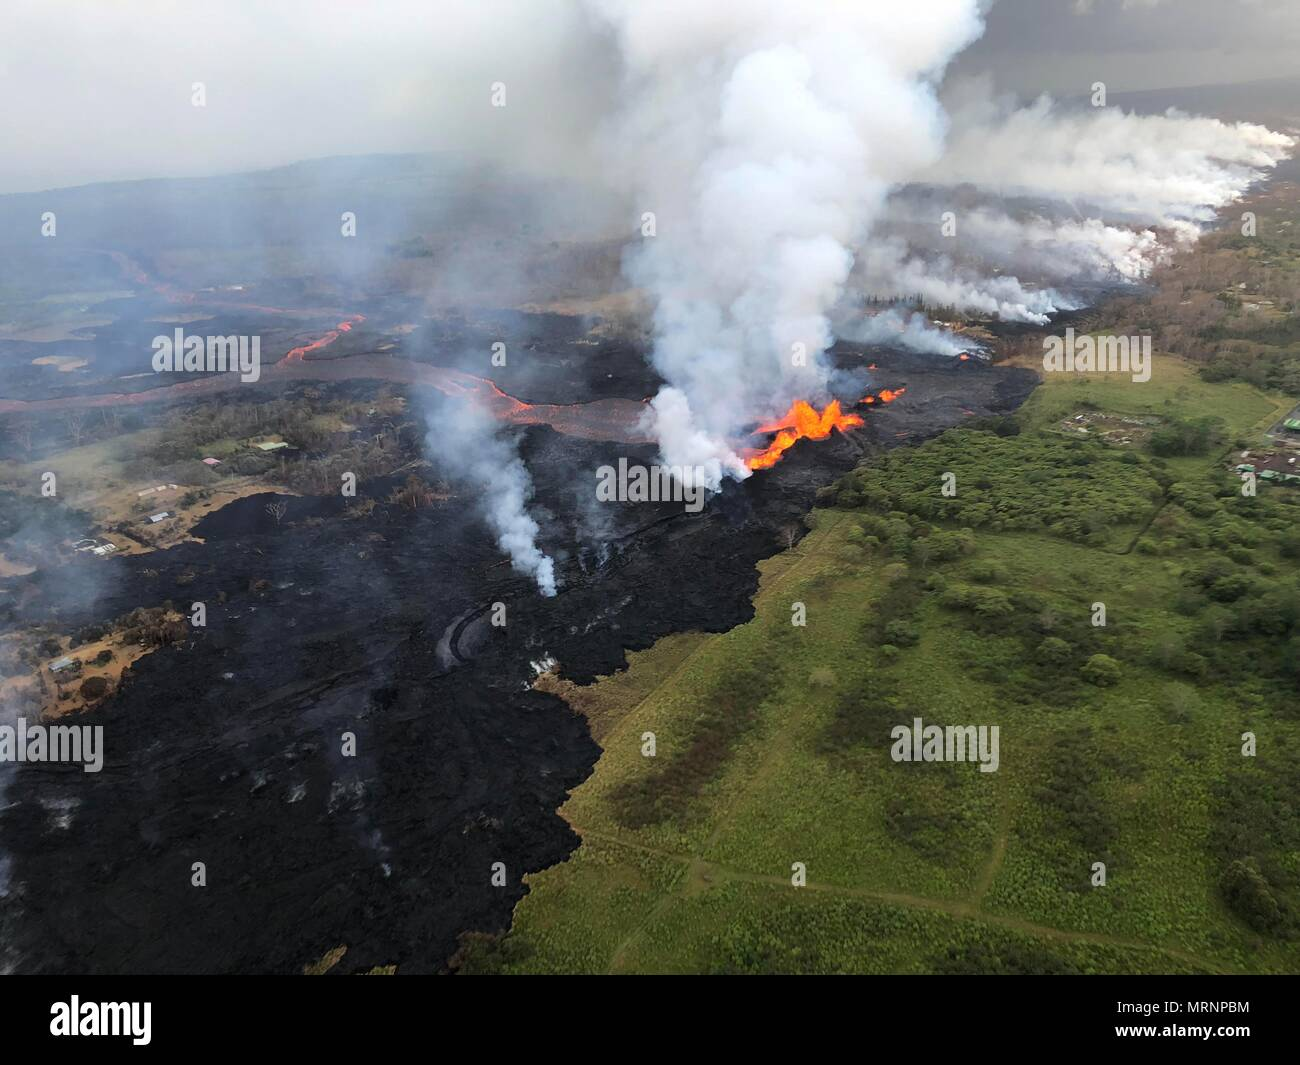 Channelized lava streams down fissure 22 in the East Rift Zone from the eruption of the Kilauea volcano May 21, 2018 in Pahoa, Hawaii. Stock Photo